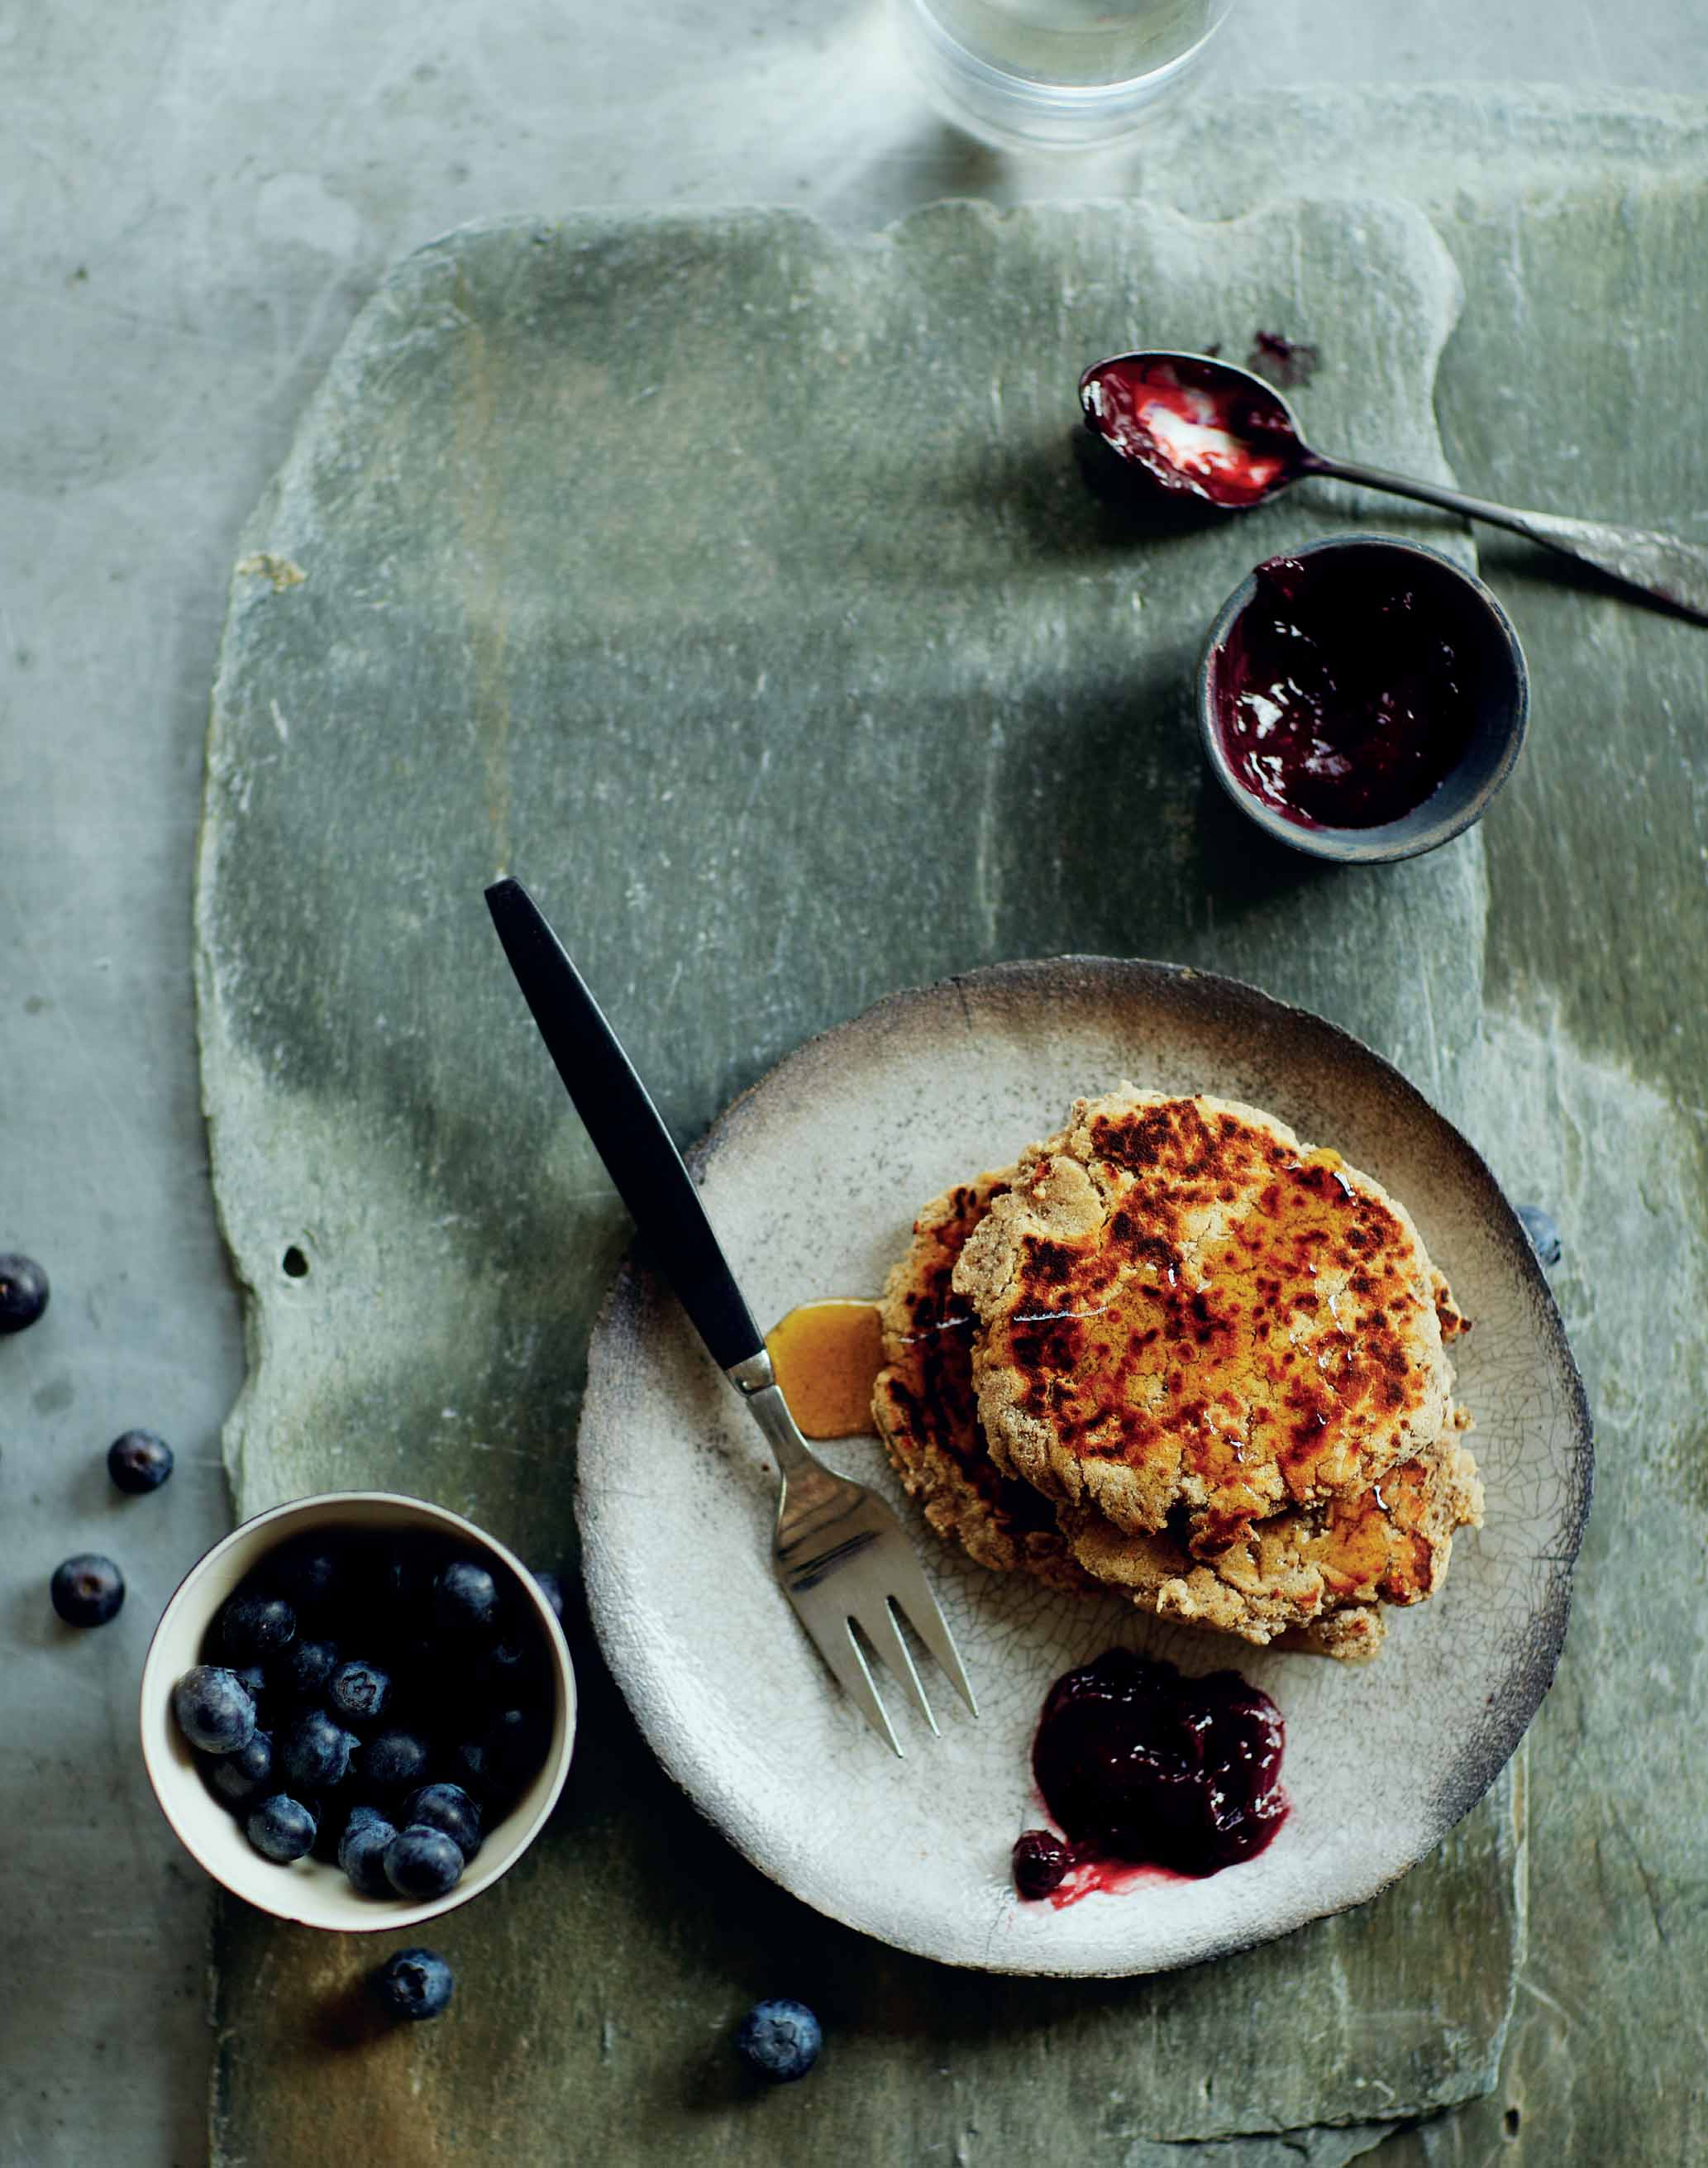 Chia and Coconut Flour Pancakes with Blueberry Baobab Sauce